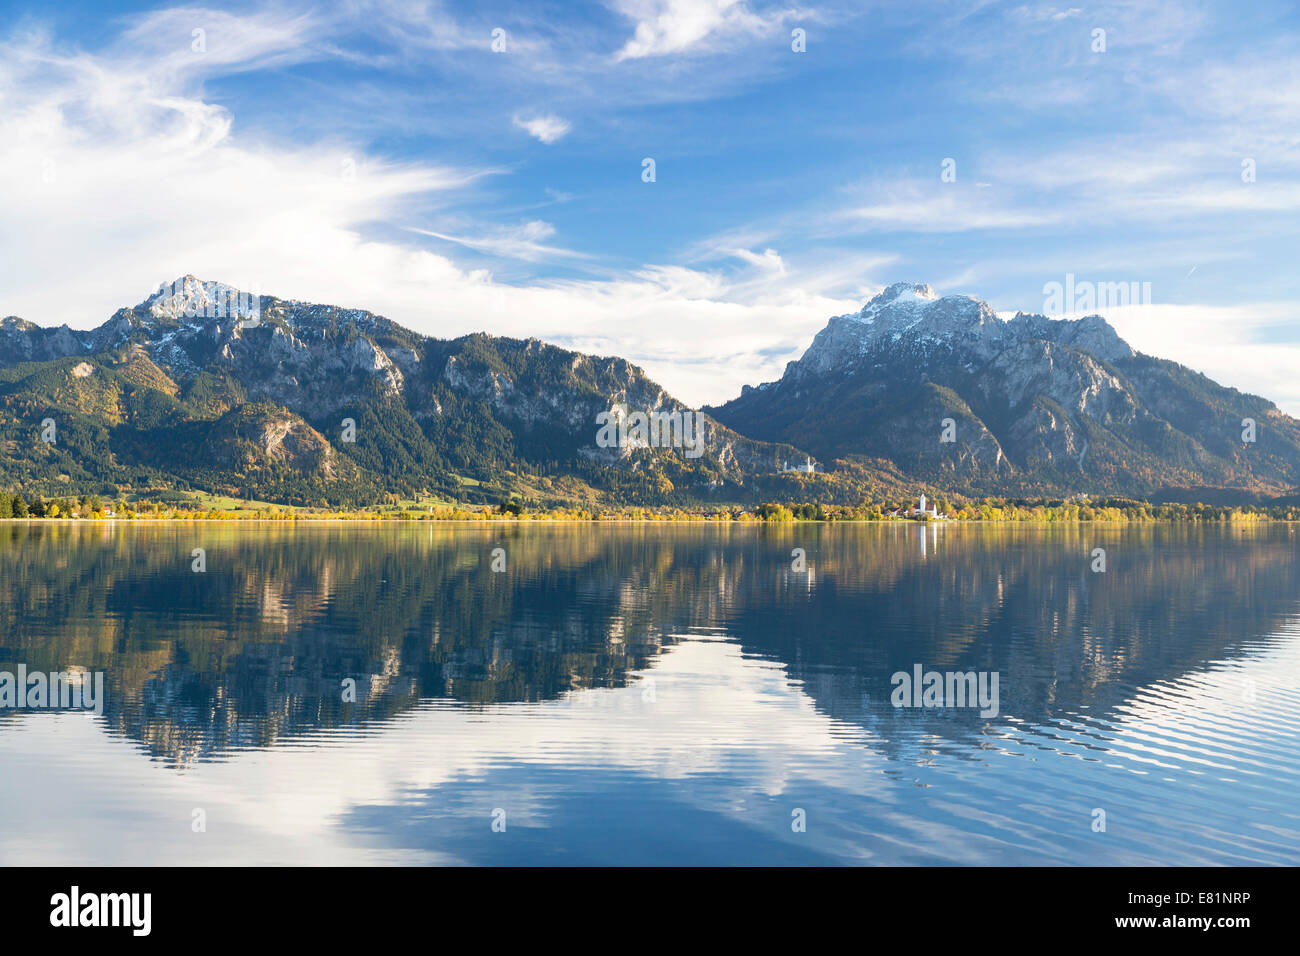 Autumn mood with mountain views on Forggensee lake near Füssen, East Allgäu, Bavaria, Germany Stock Photo